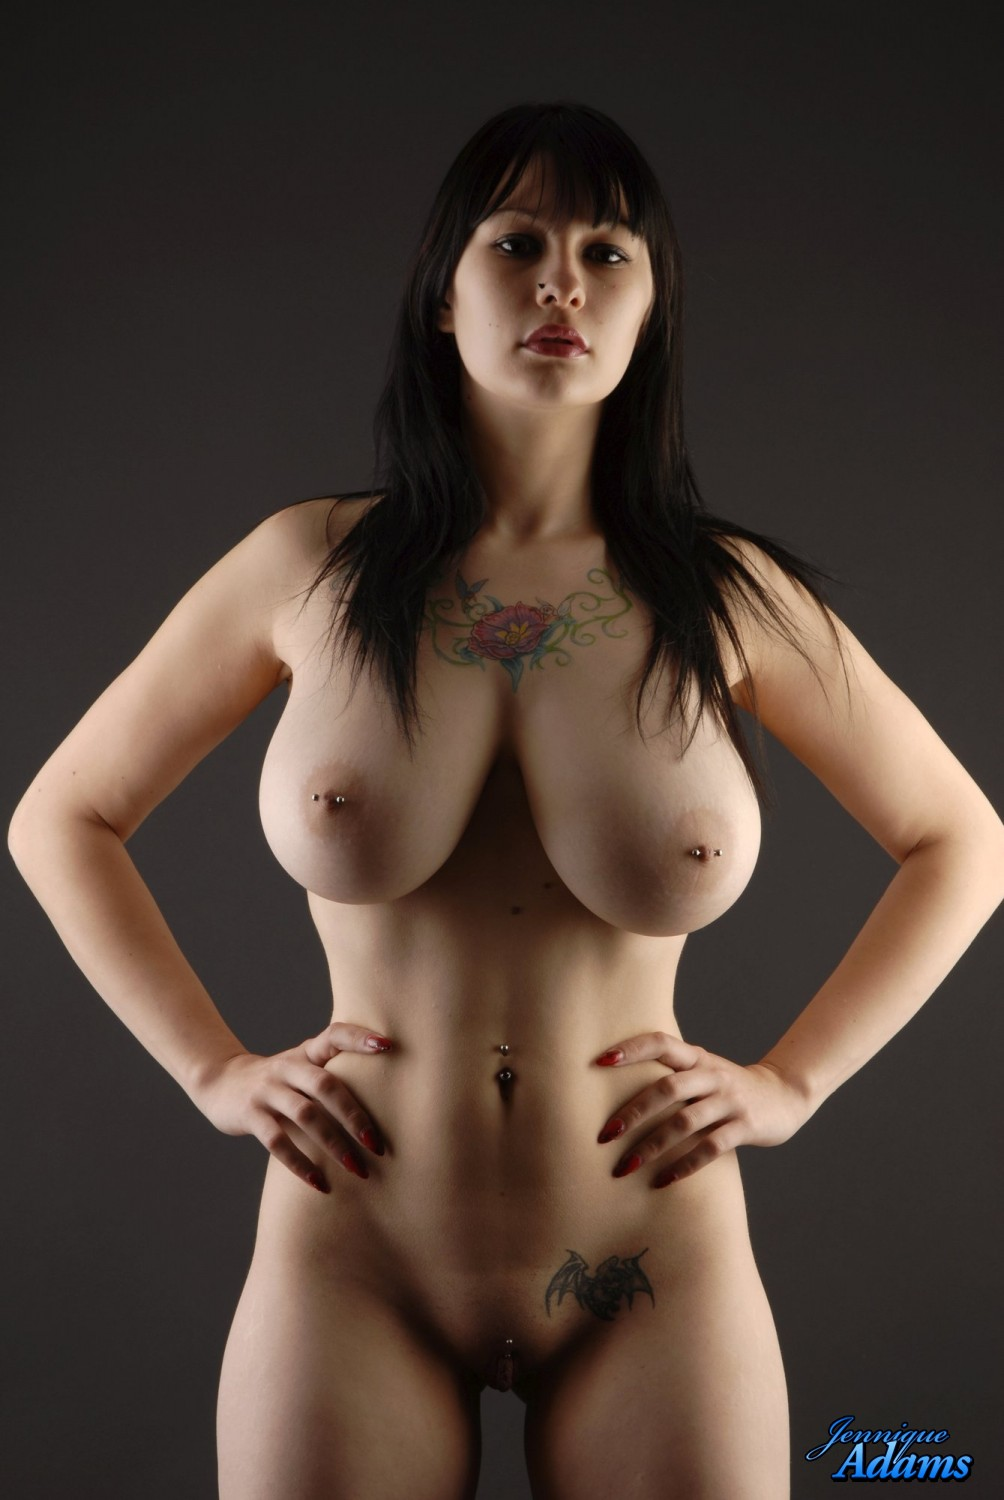 Young full figured nude model